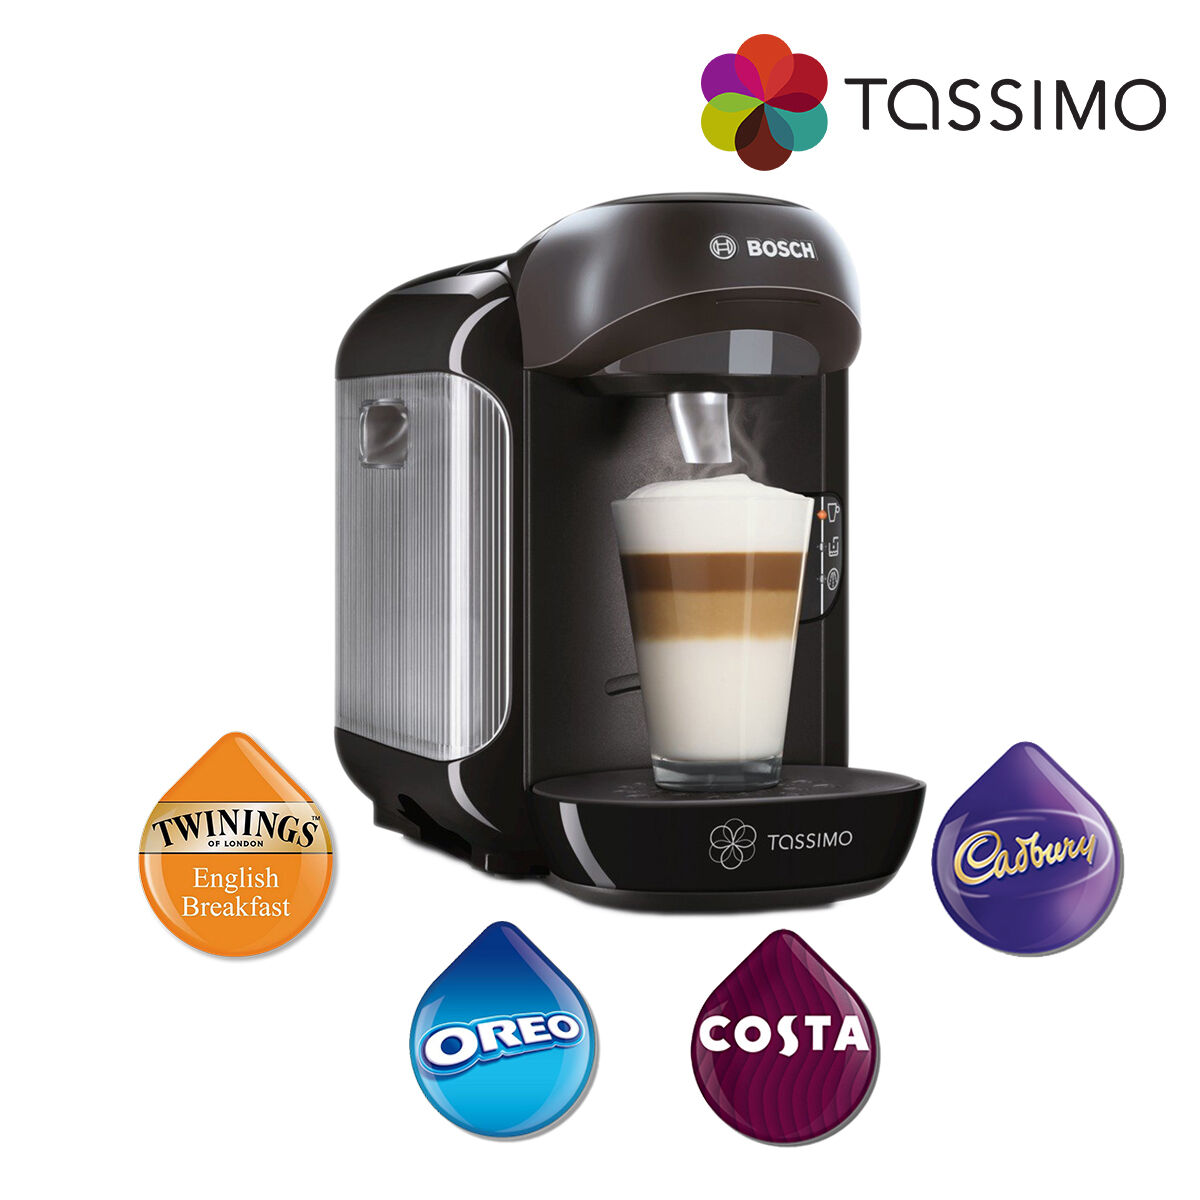 bosch tassimo vivy tas1252gb coffee pod machine hot drink maker 0 7l 1300w picclick uk. Black Bedroom Furniture Sets. Home Design Ideas